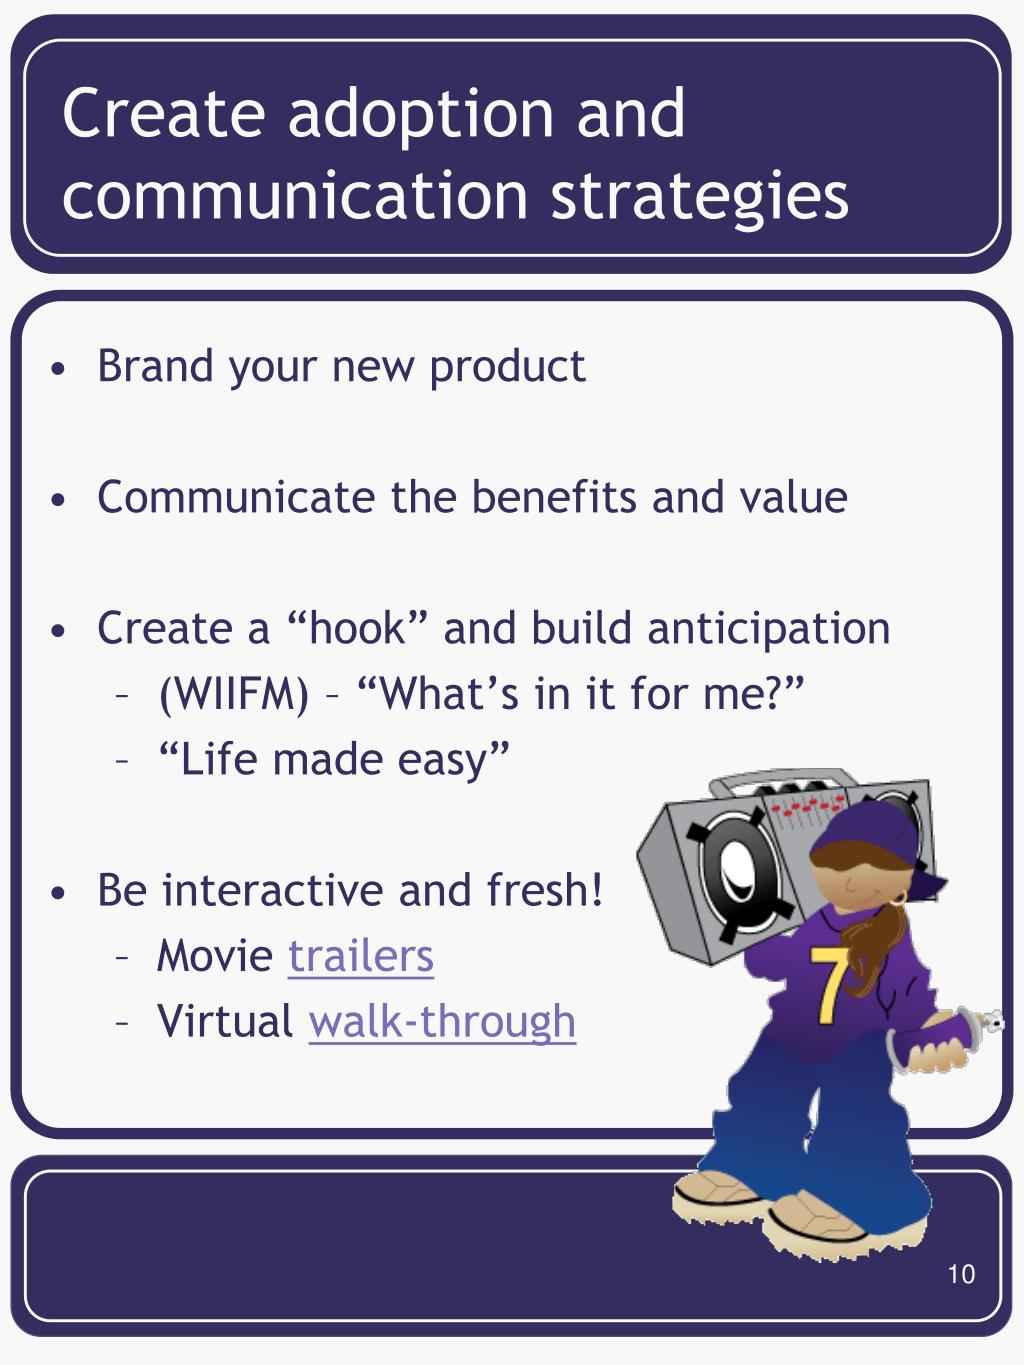 Create adoption and communication strategies